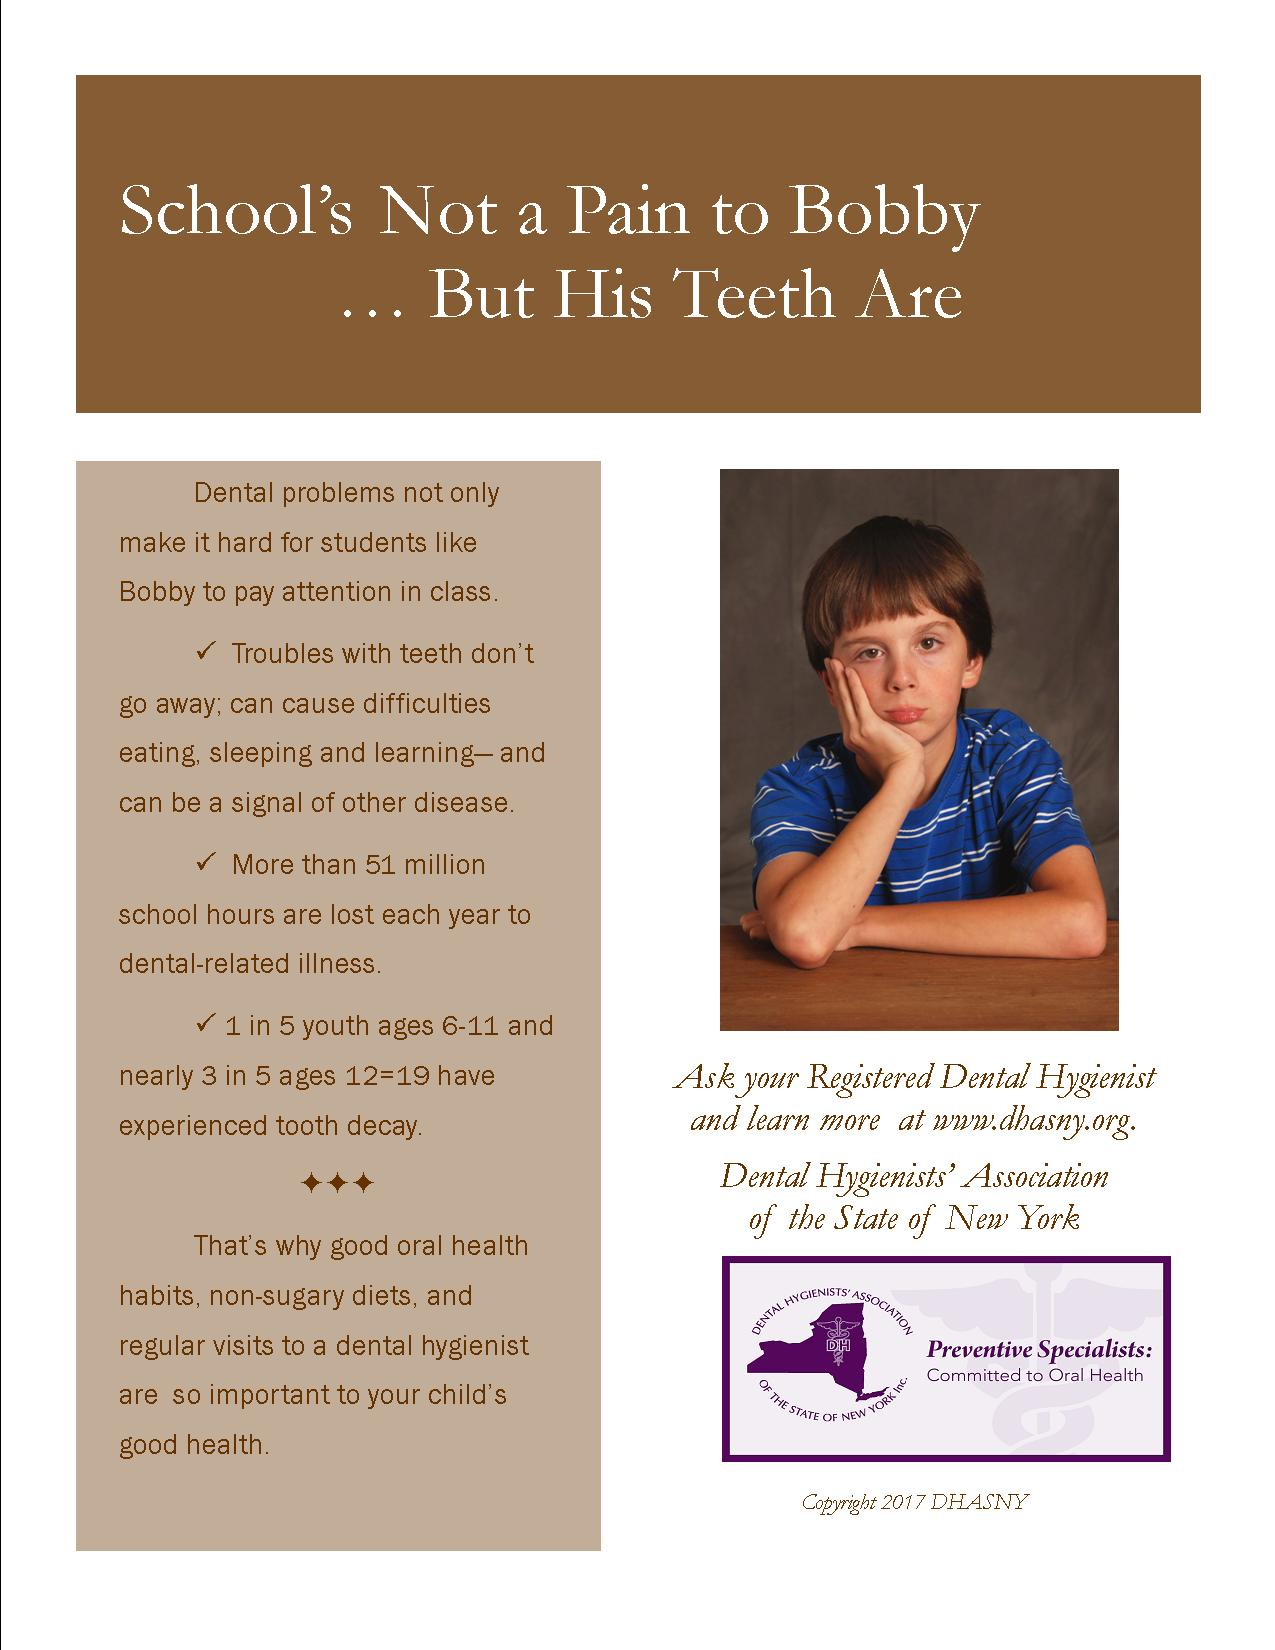 DHASNY PSA: Children's Oral Health Care